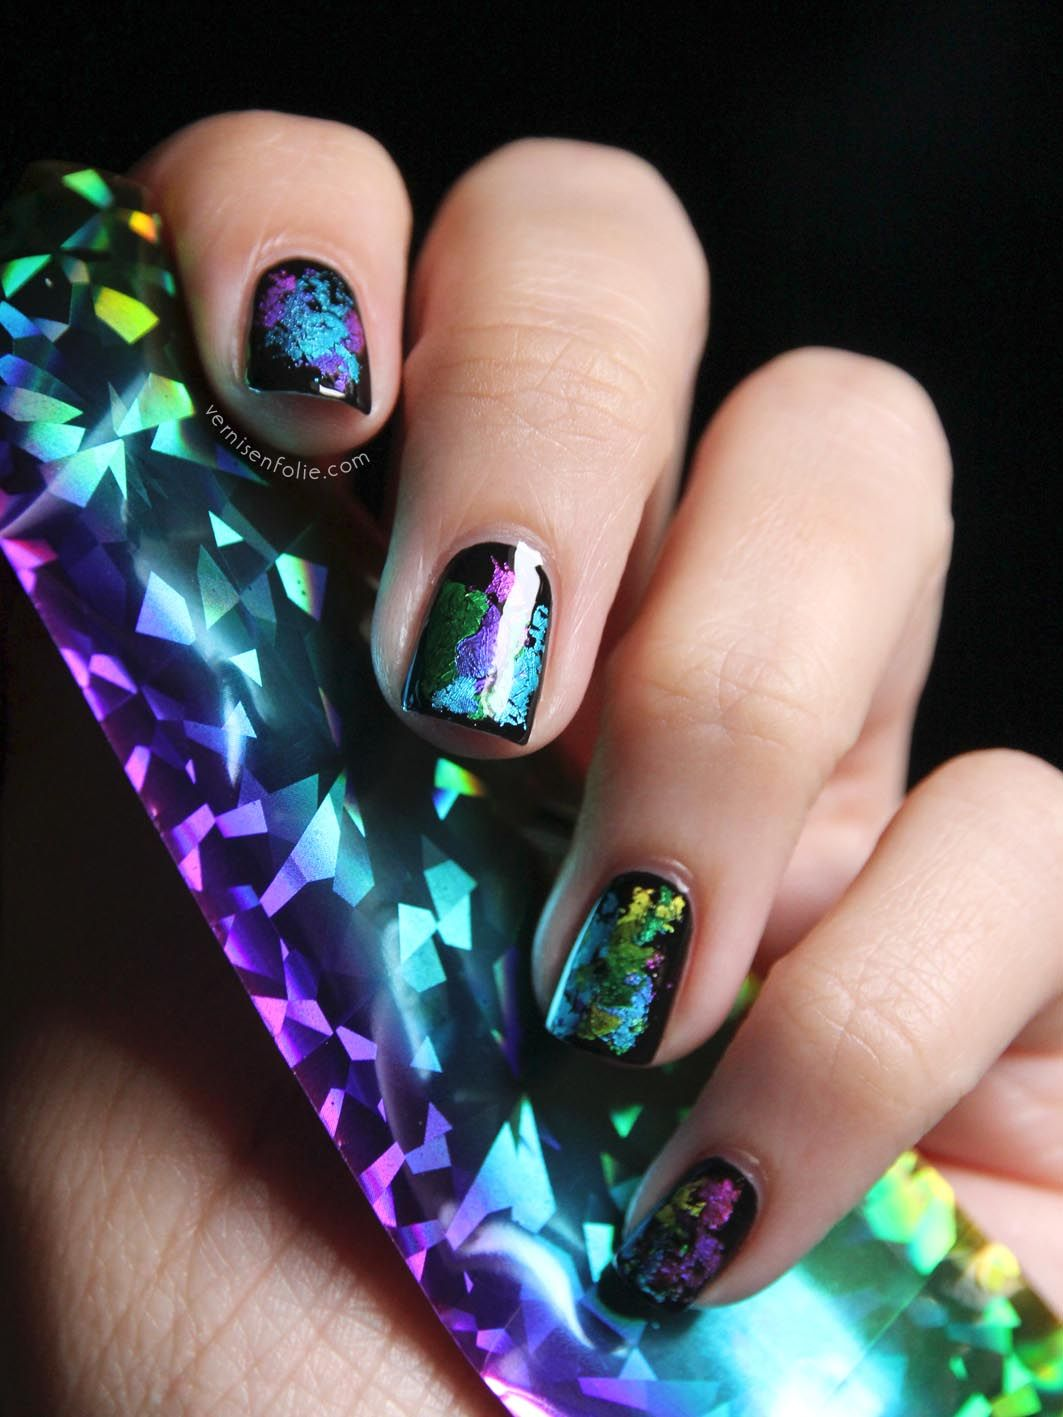 Foils from Born Pretty Store  Nails  Pinterest  Store Manicure